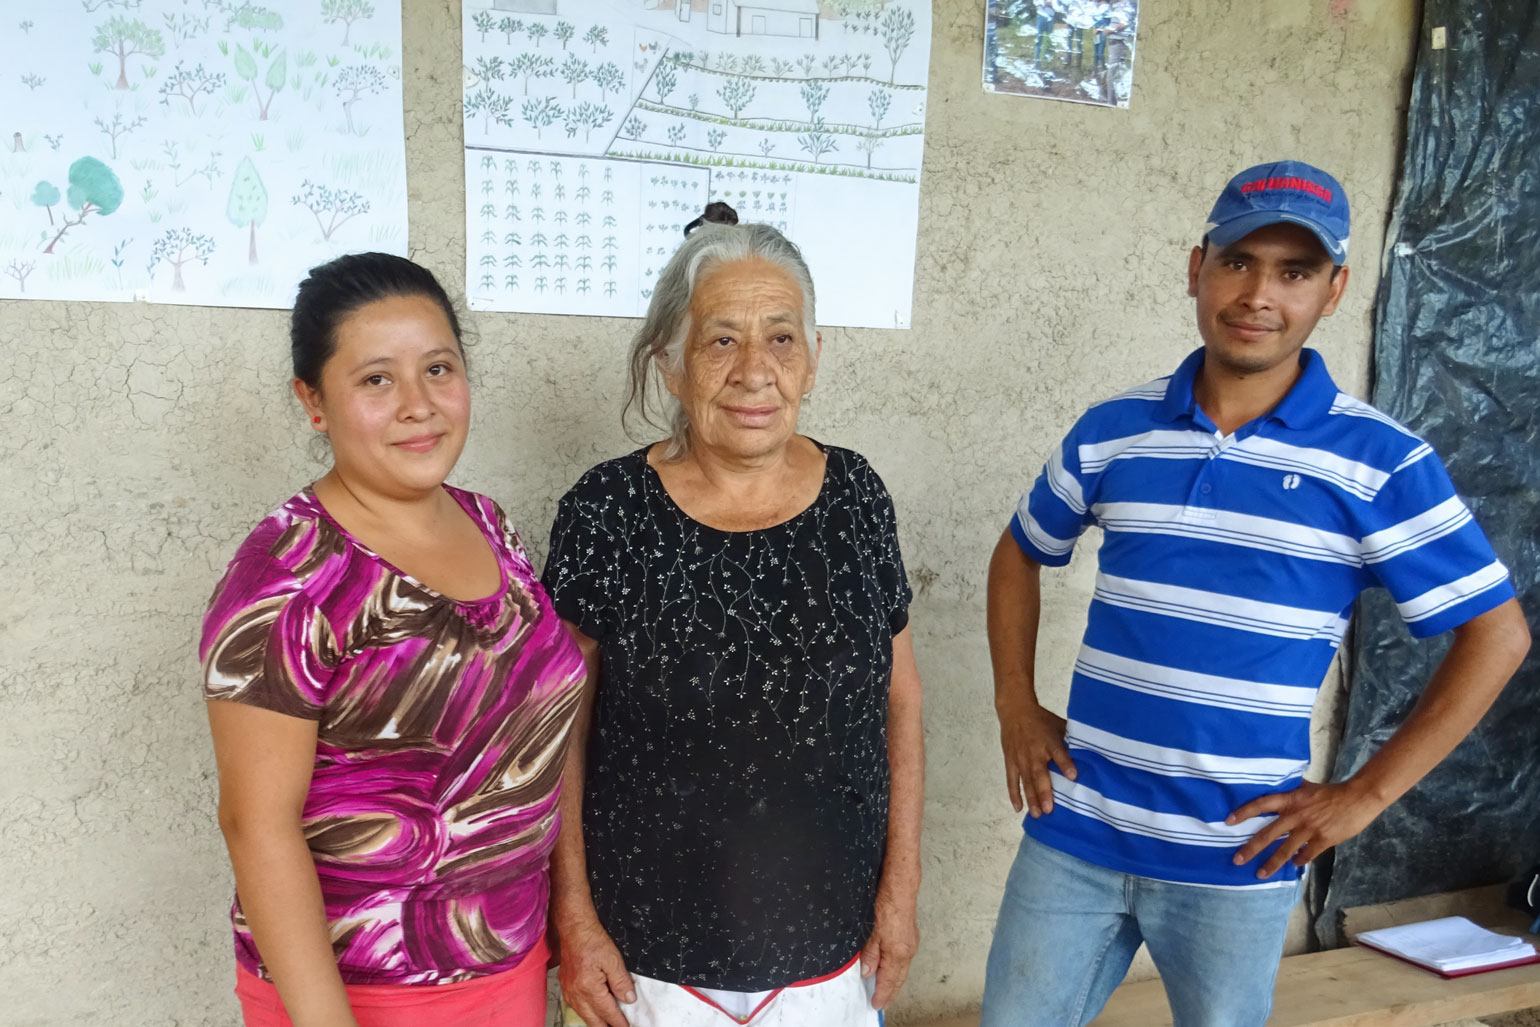 Farming through hardship: A family farmer in Honduras discusses COVID, hurricanes and more - A photo of three people standing in front of a concrete wall.